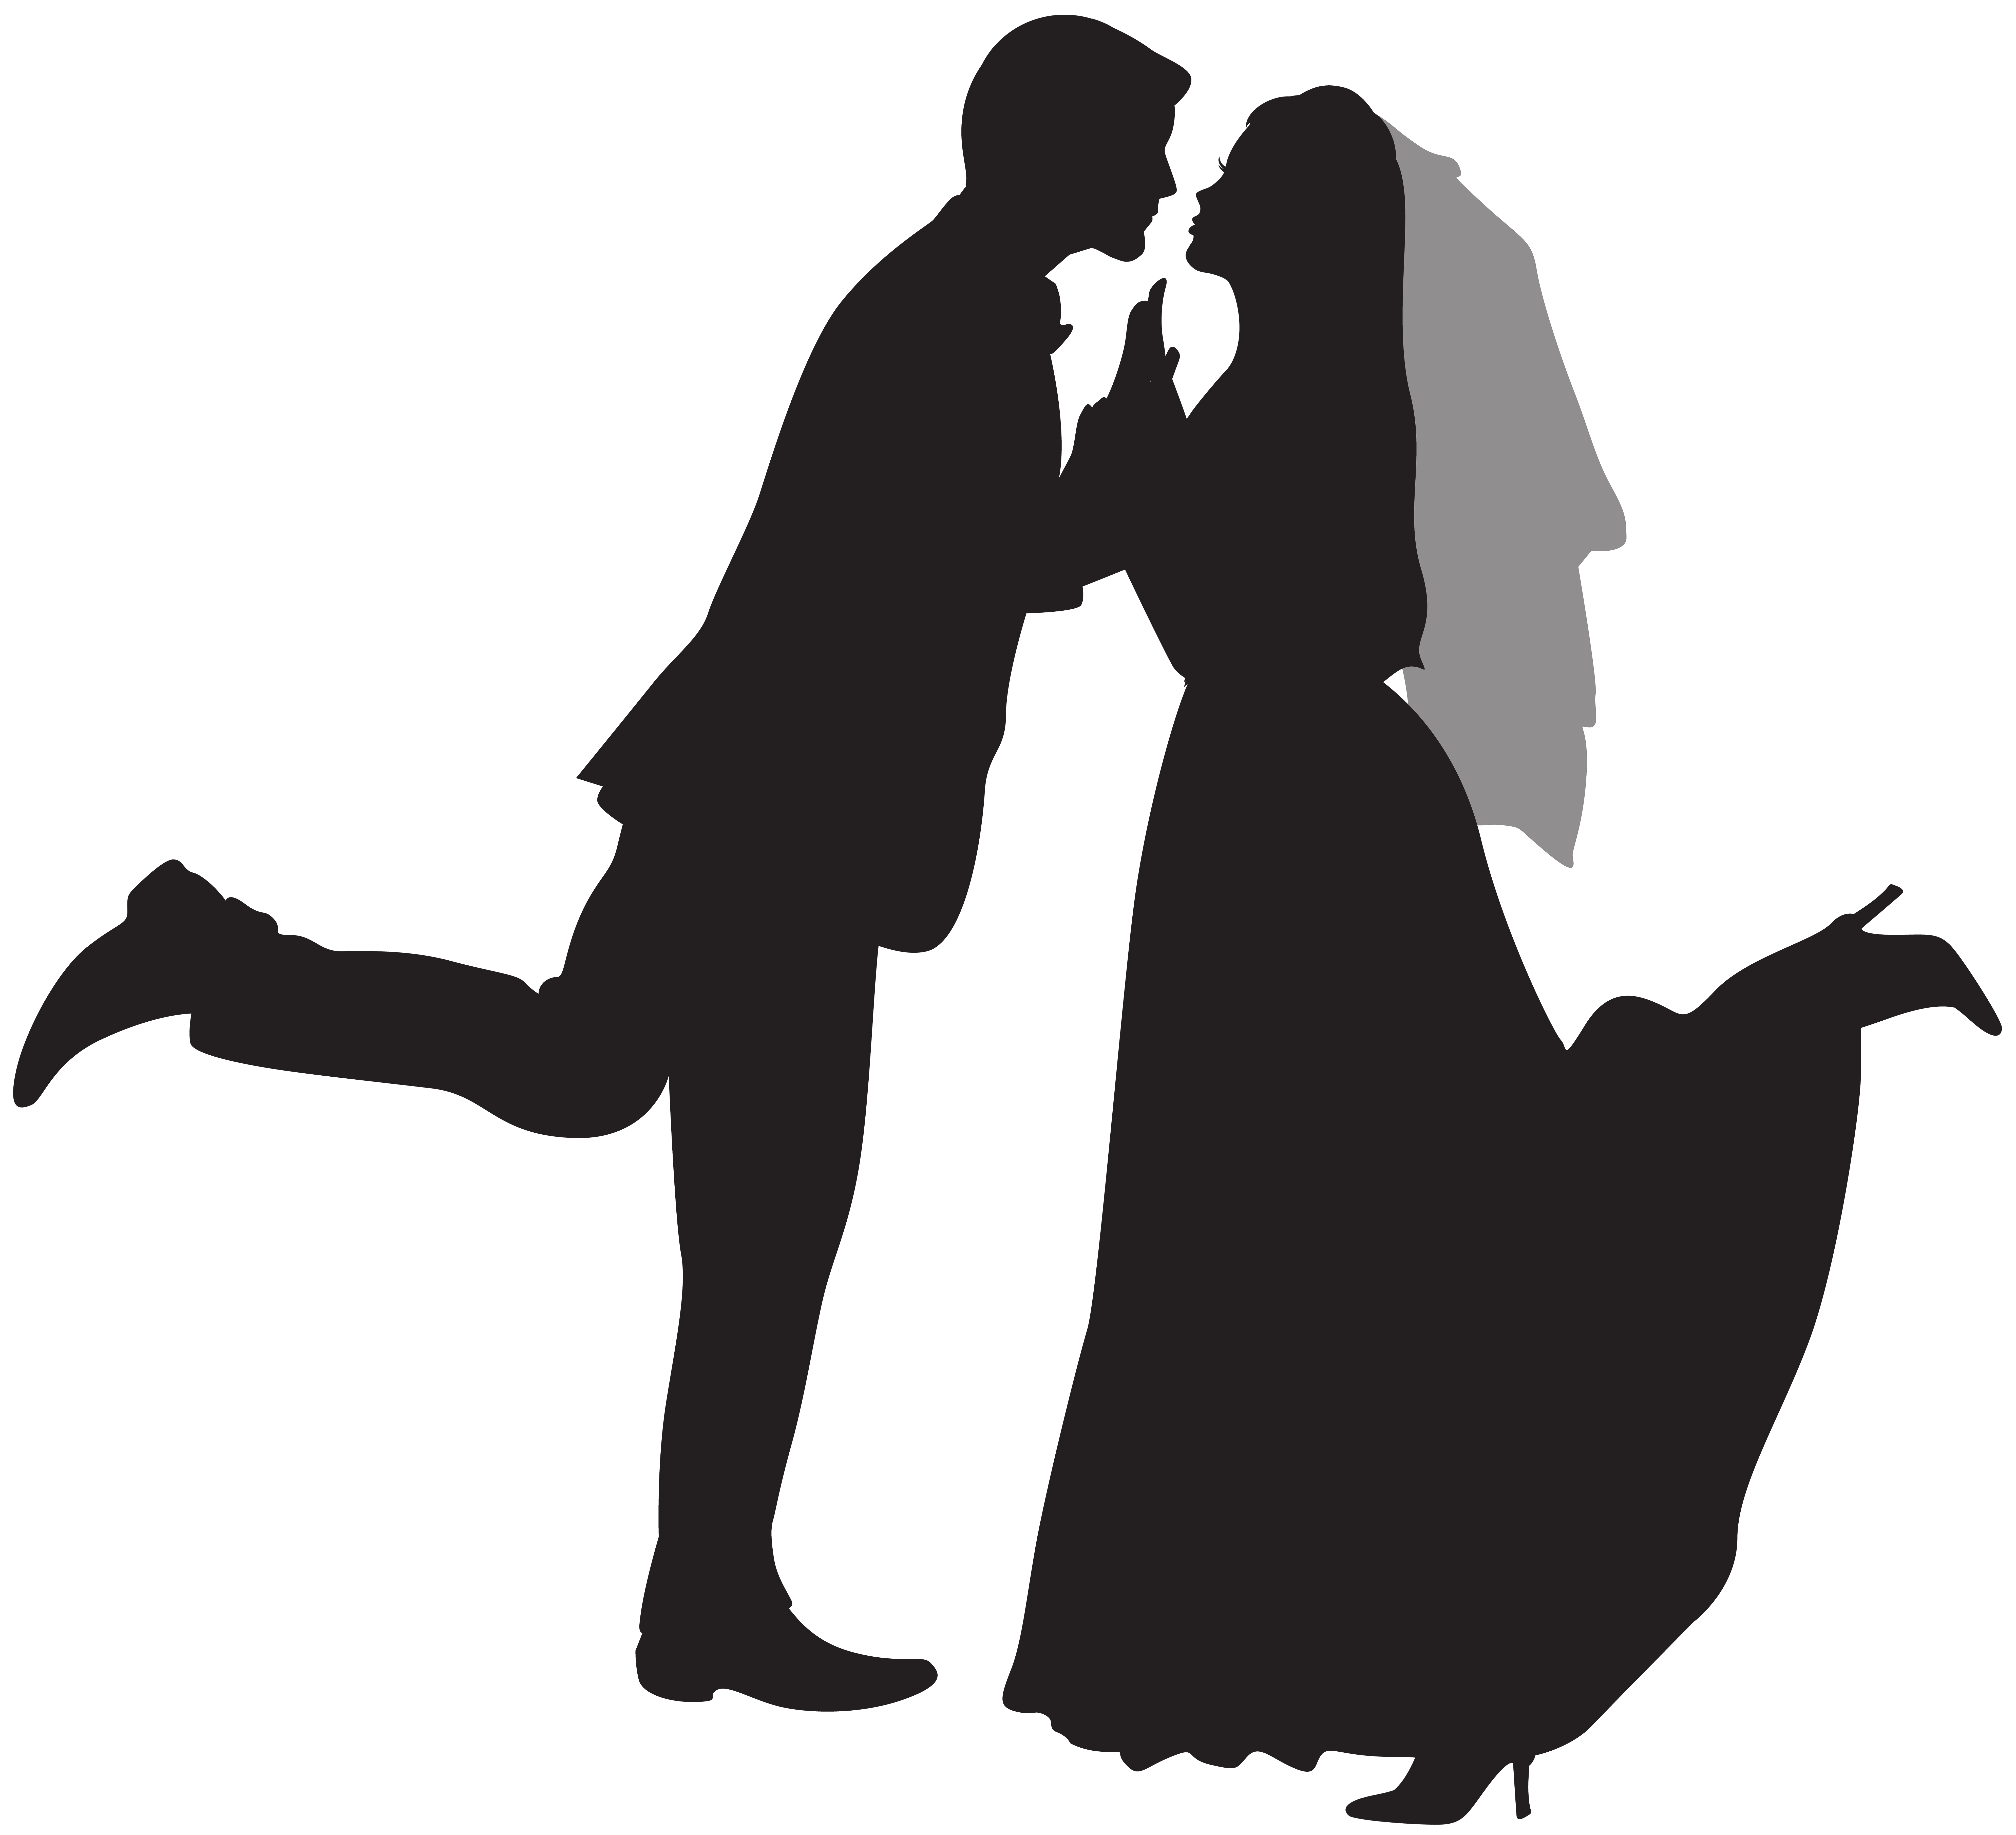 Silhouette wedding png clip. Couple clipart black and white